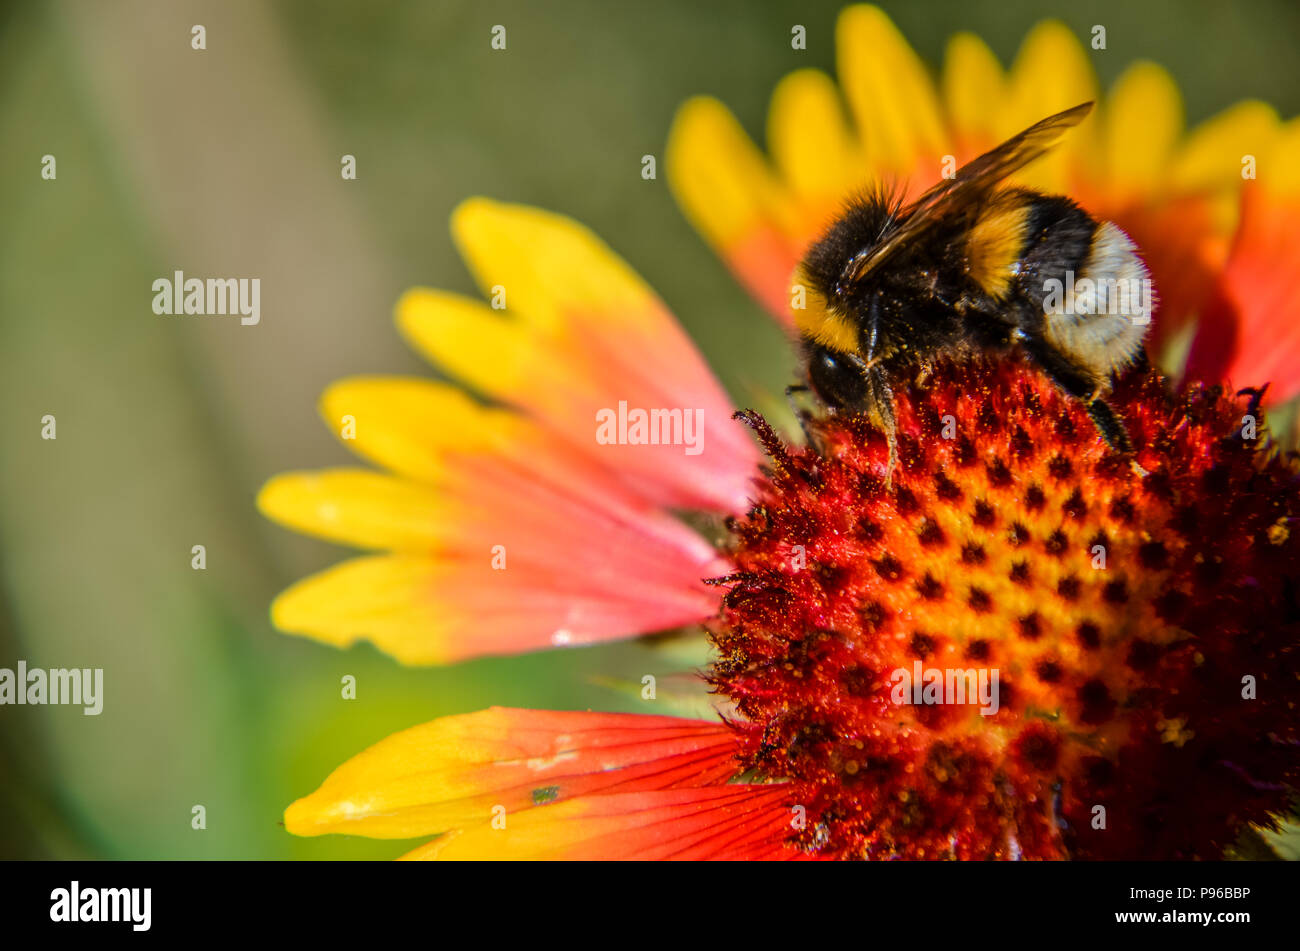 Bee on yellow and orange flower head of rudbeckia black-eyed susan - Stock Image